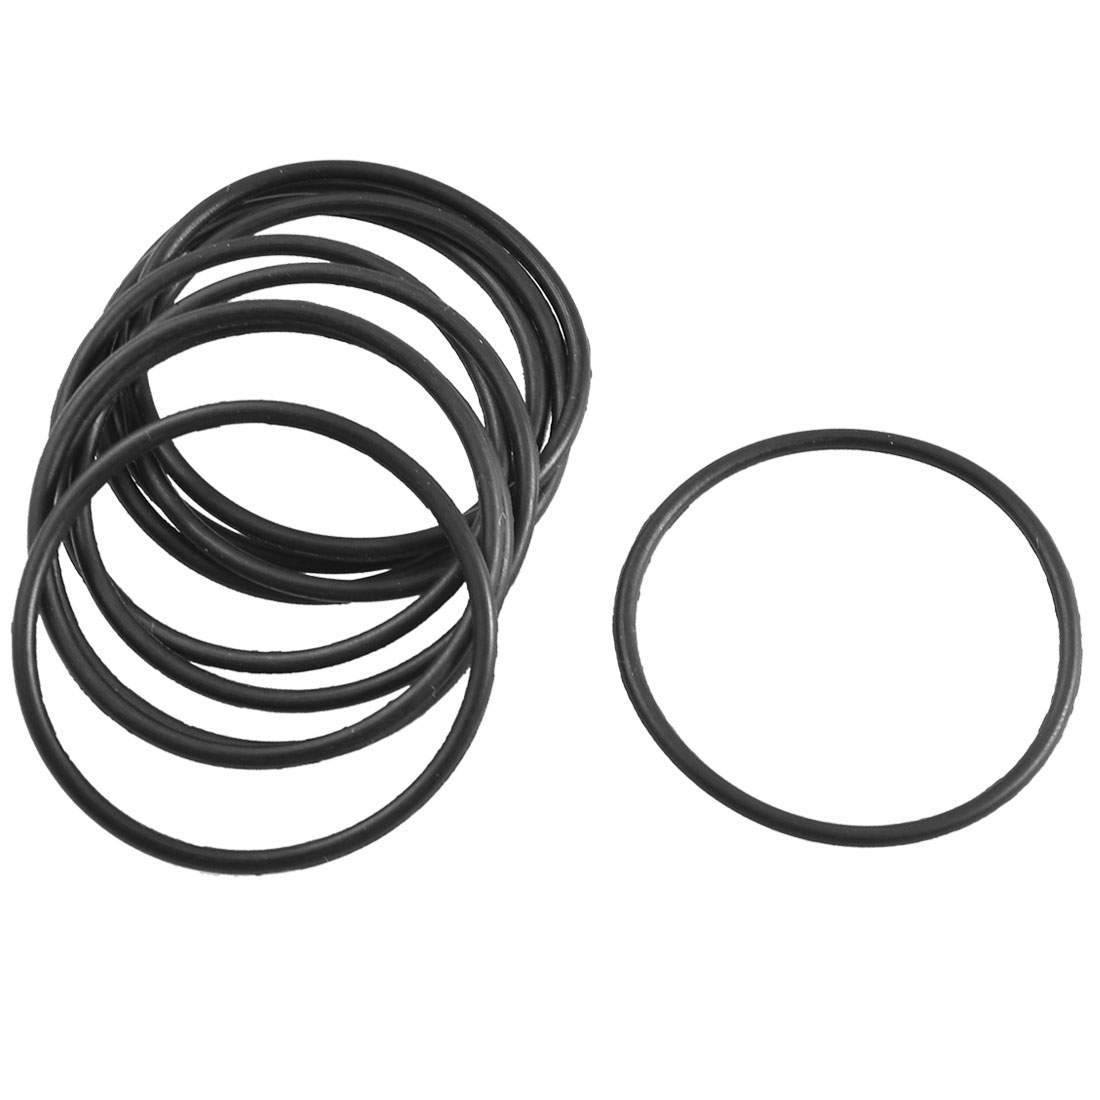 10 Pcs Black Rubber O Ring Oil Seal Sealing Gasket 33.5mm x 1.8mm